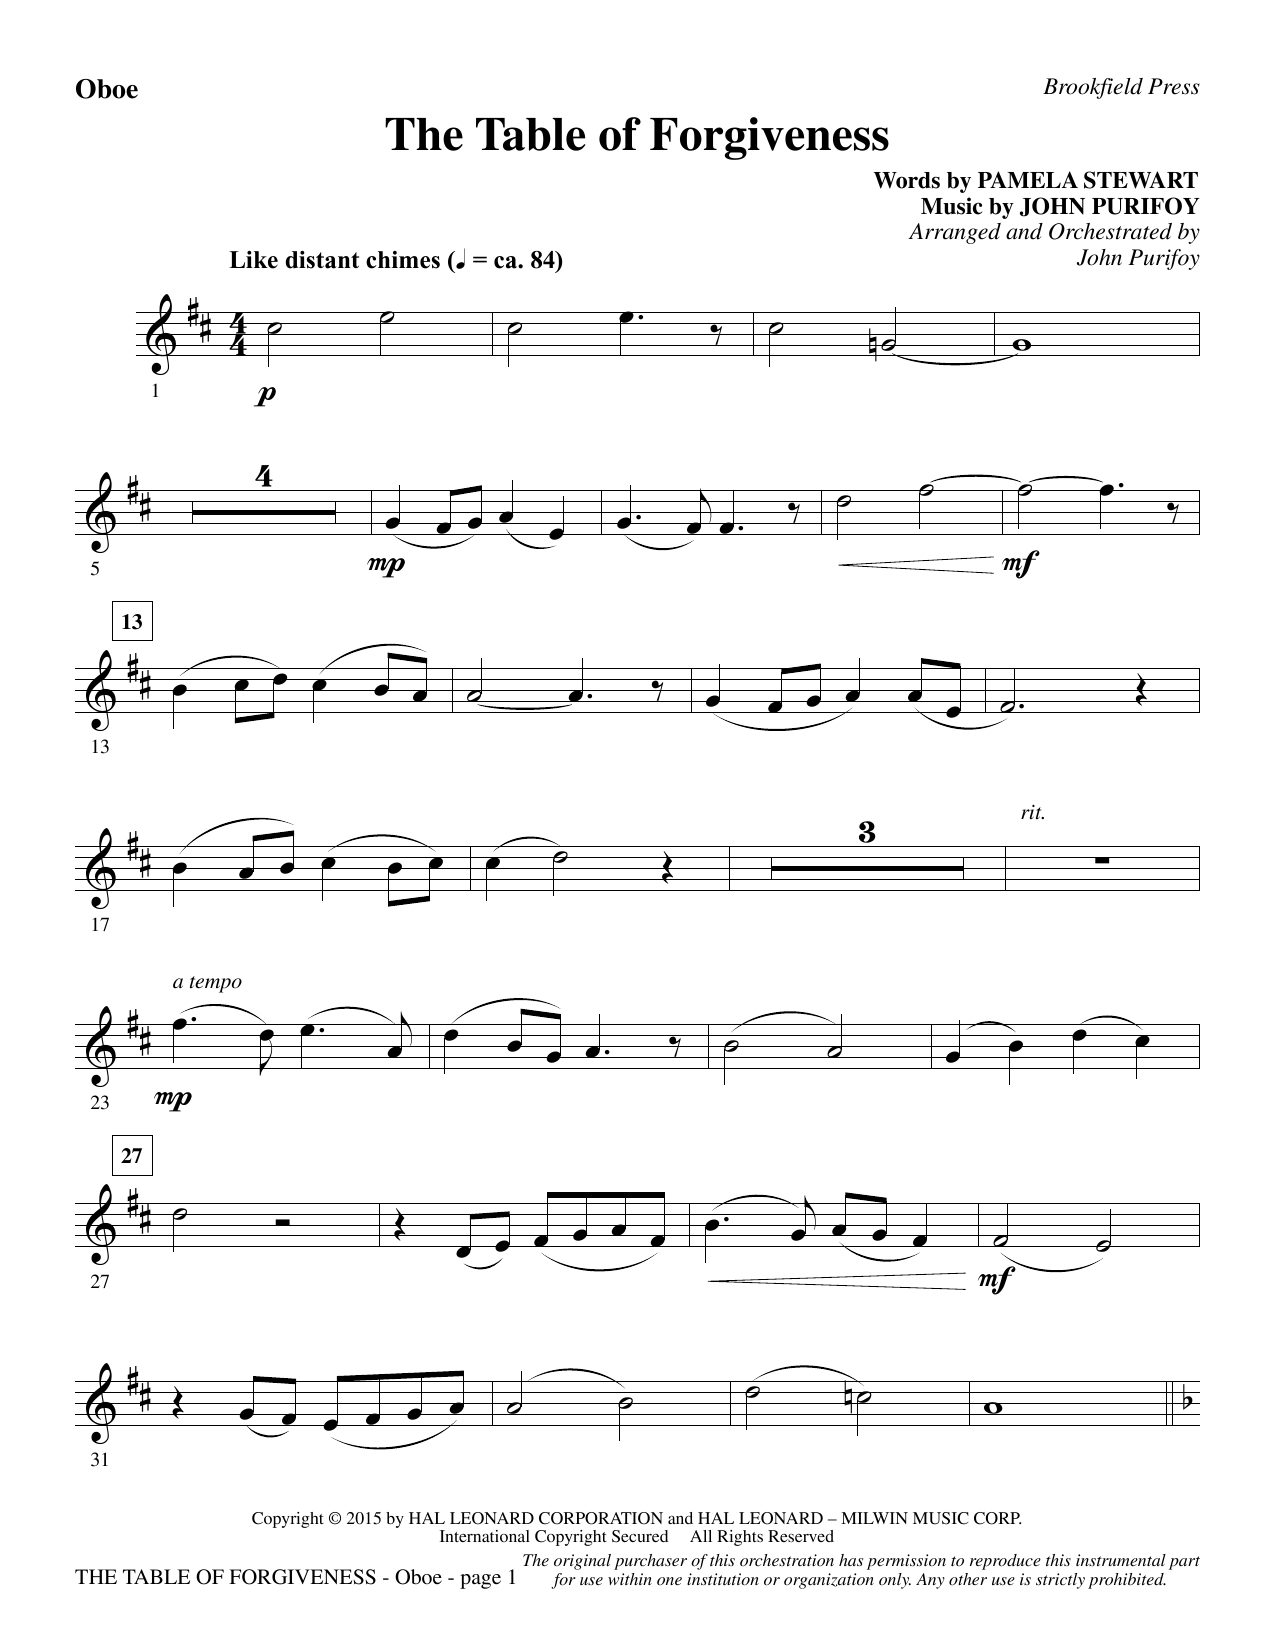 The Table of Forgiveness - Oboe Sheet Music